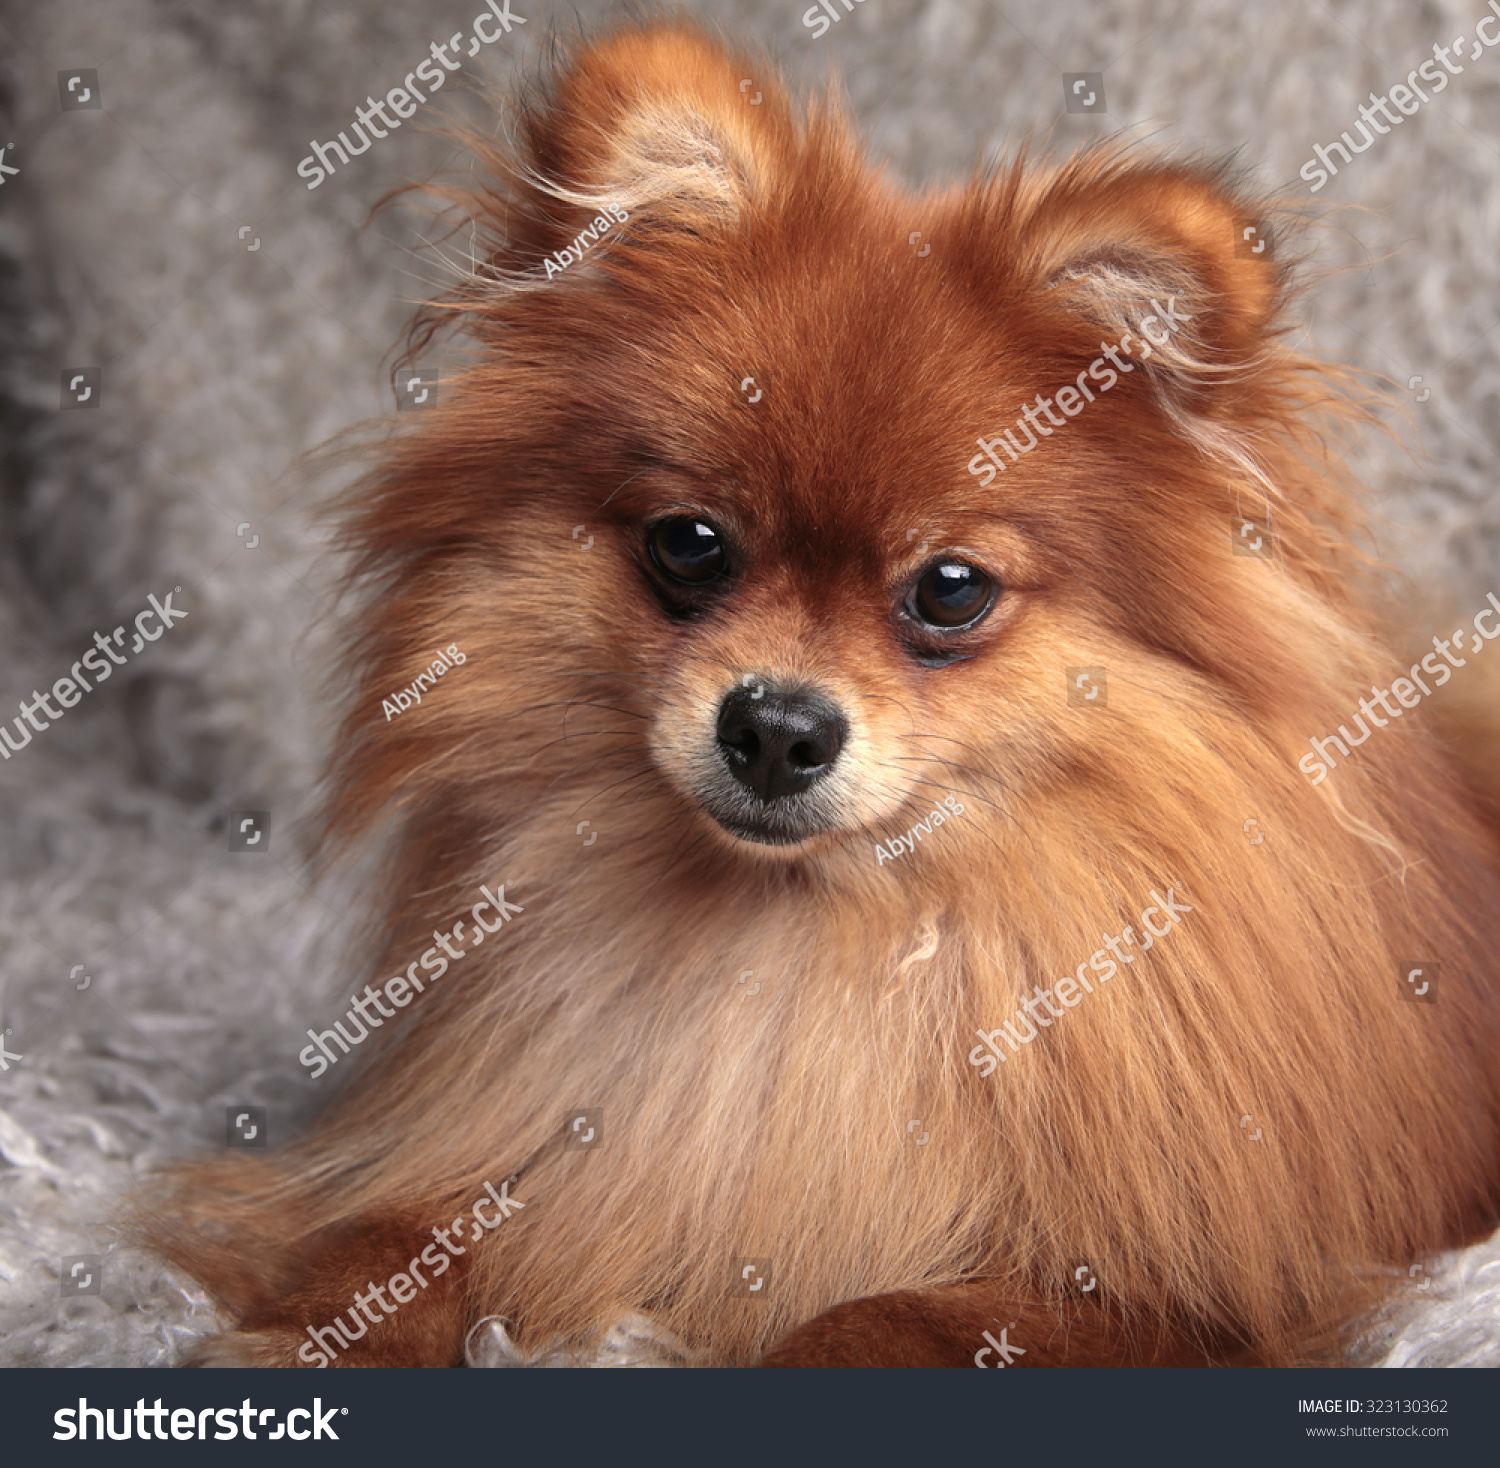 Cute Pomeranian spitz dog